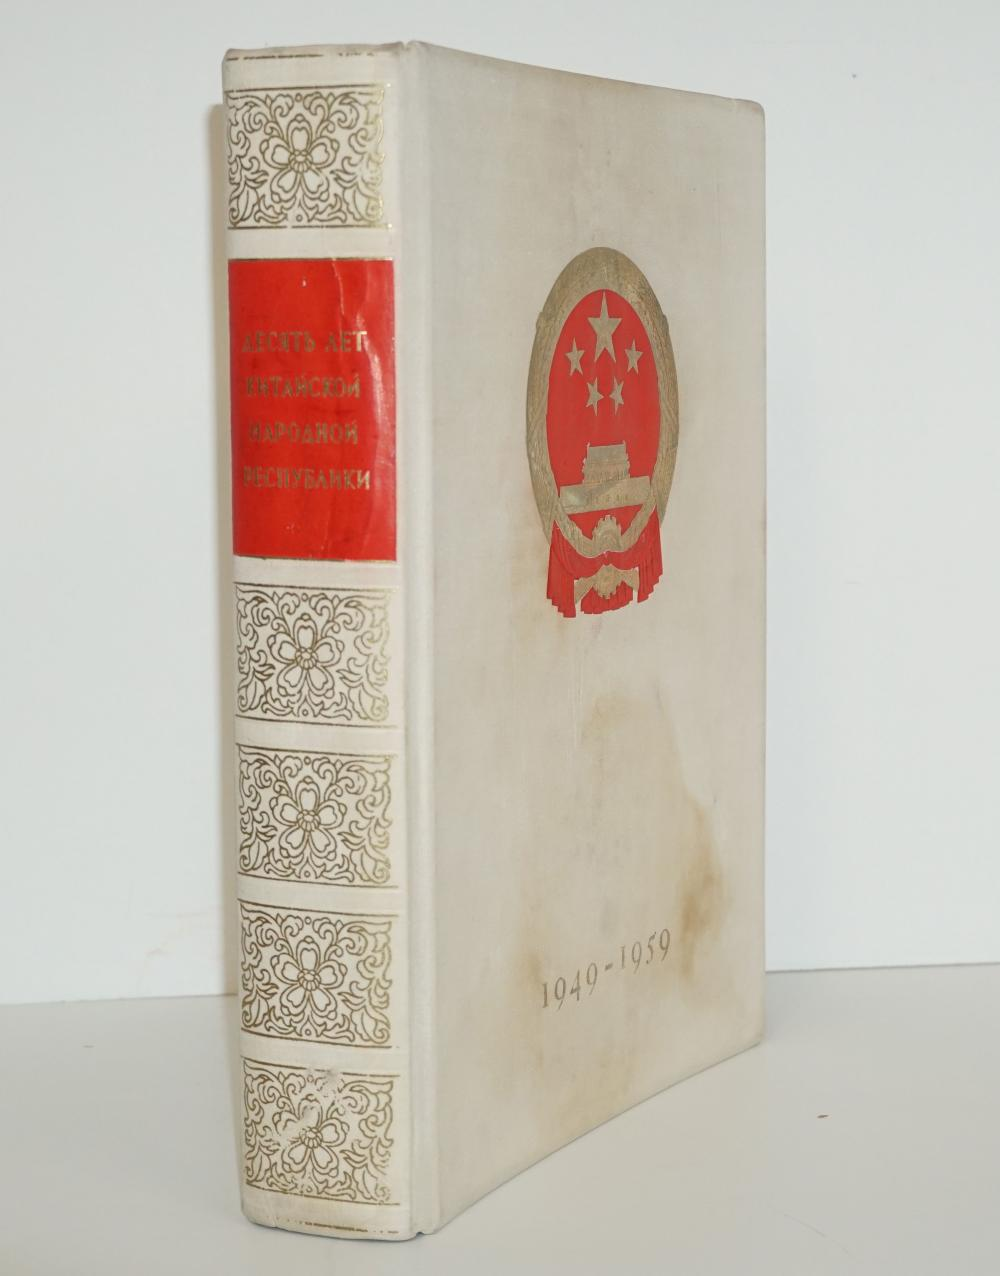 Mao Zedong SIGNED Presentation Copy of the Tenth Anniversary of the People's Republic of China